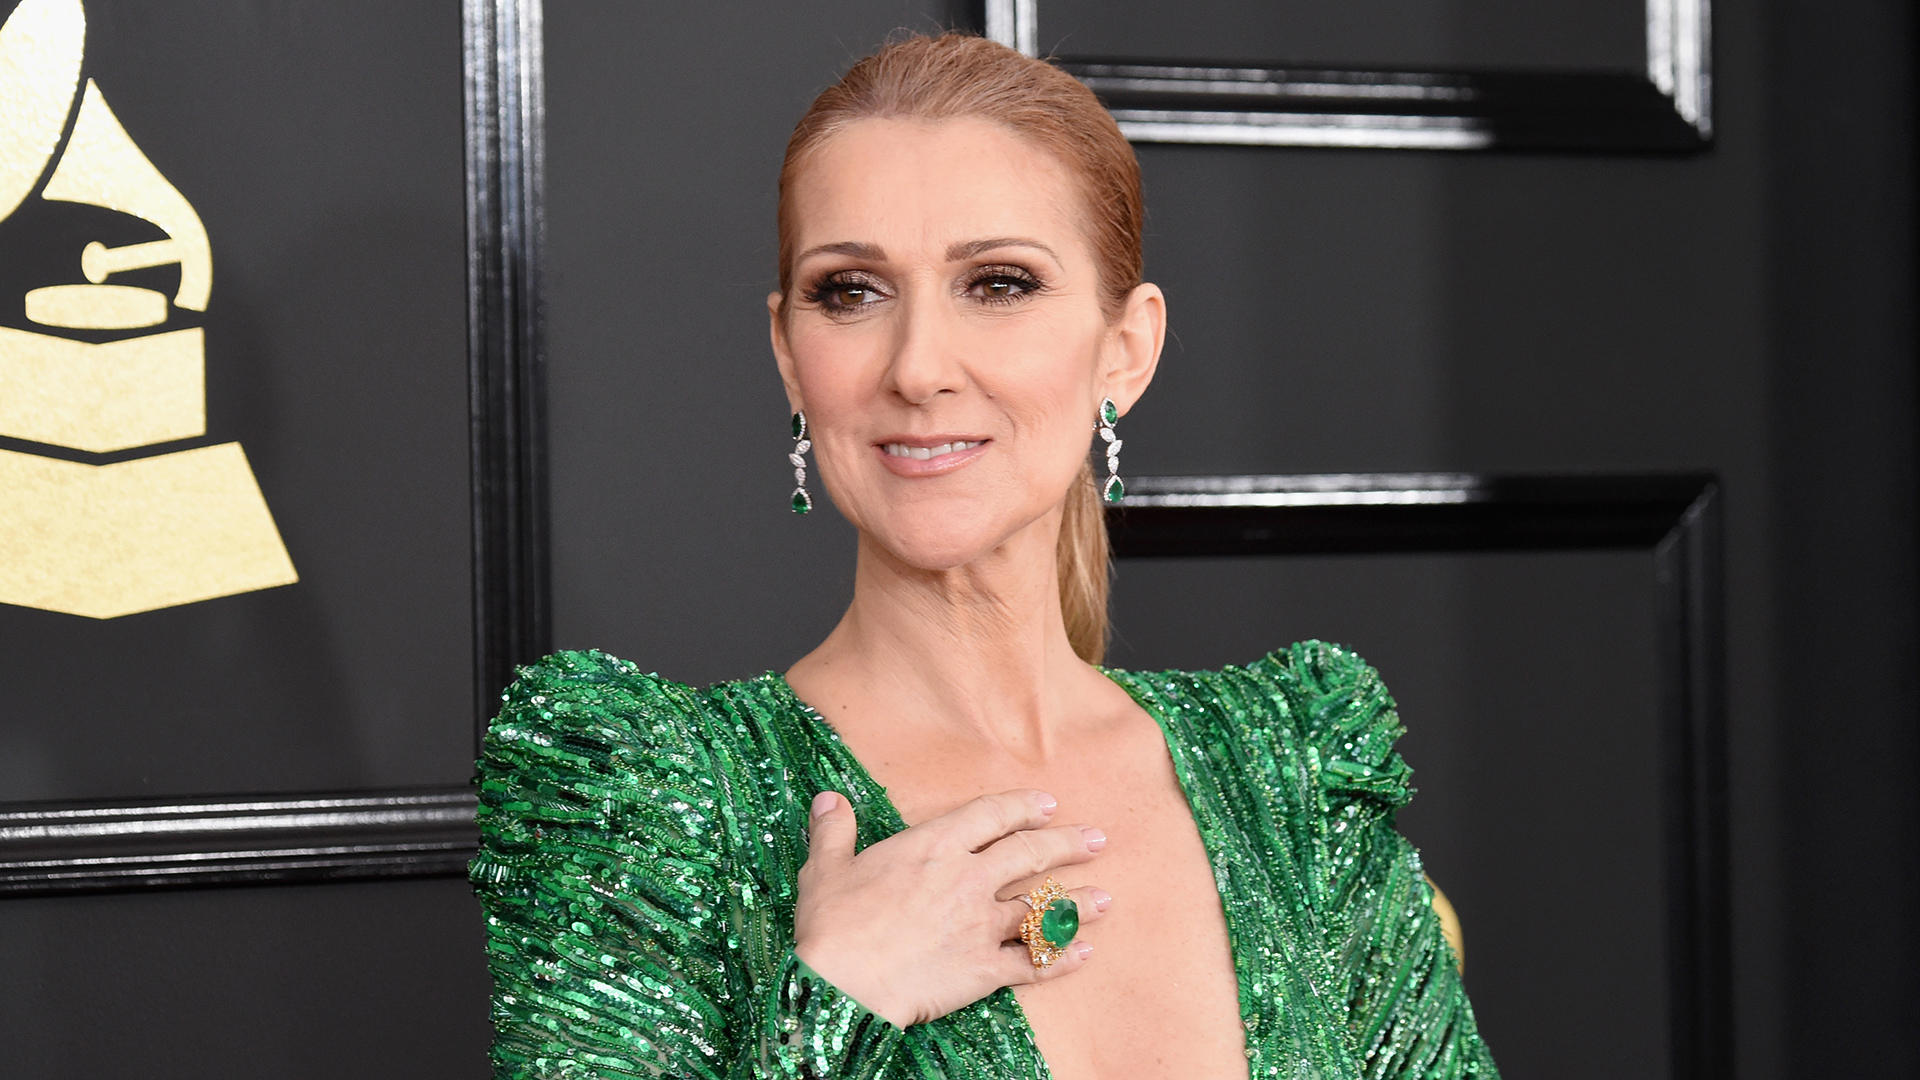 Celine Dion appears naked in Instagram photo published by